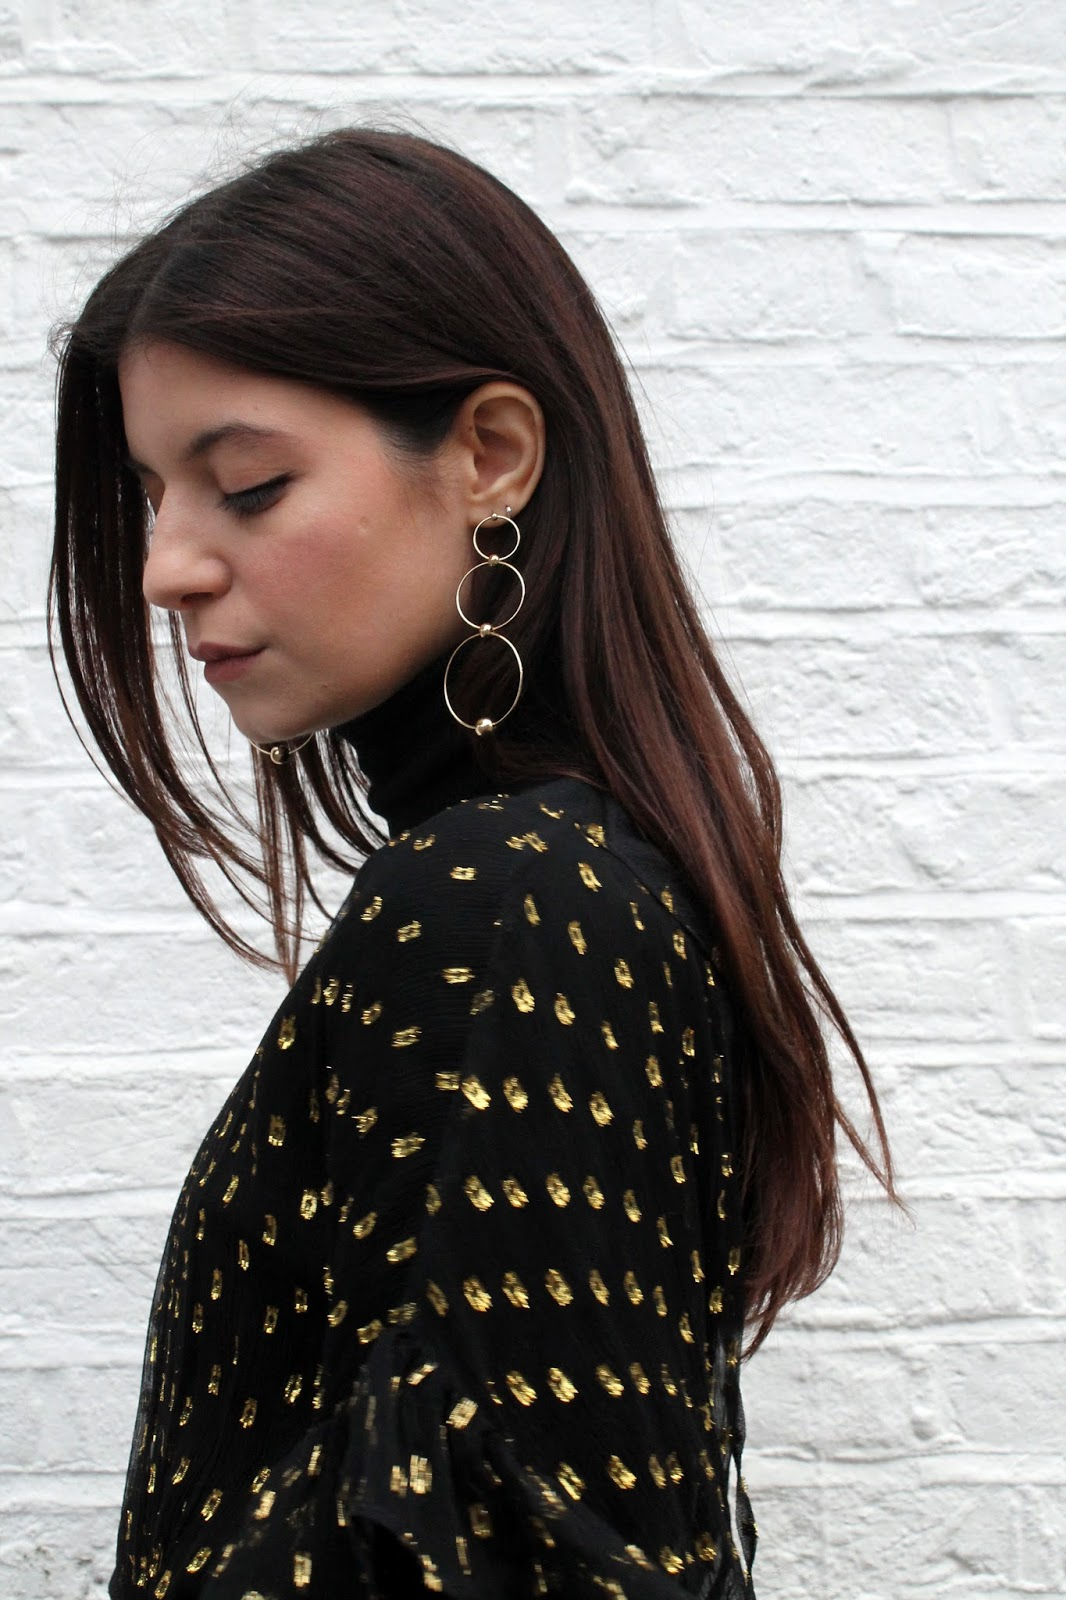 sheer dress, polka dot, gold and black, fbloggers, fashion blogger style, miss selfridge dress, uniqlo turtleneck, microinfluencer, gold earrings, minimal earrings, h&m earrings